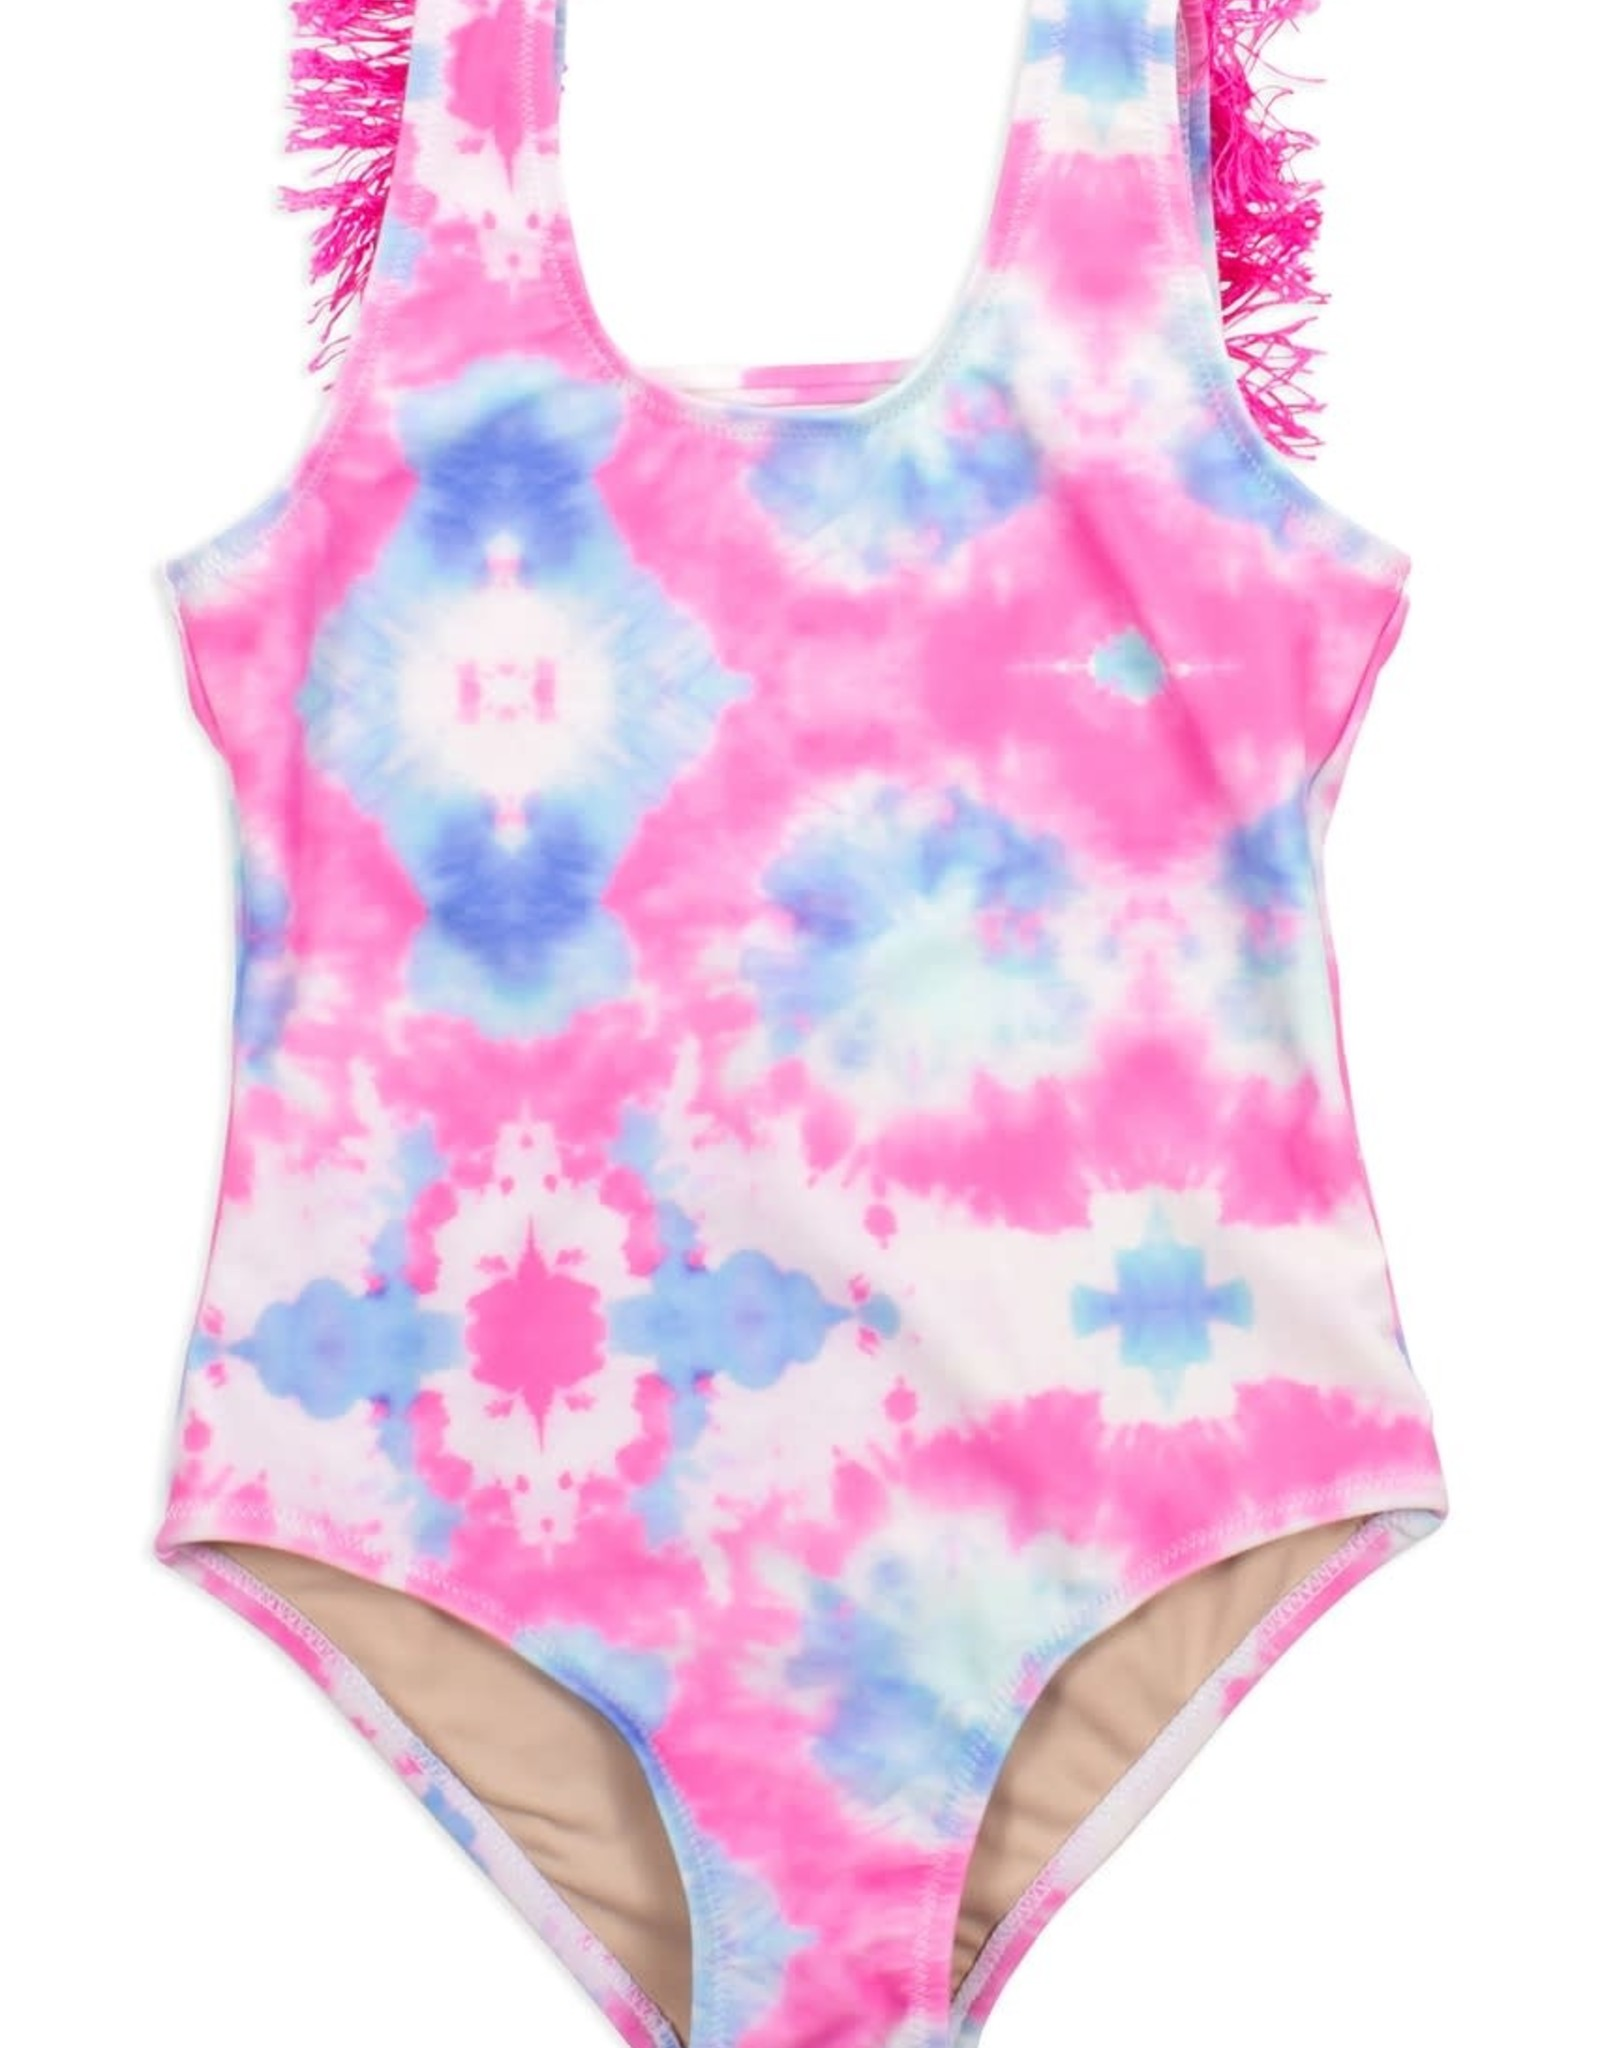 Shade Critters Shade Critters Fringe Back One Piece Cotton Candy Tie Dye